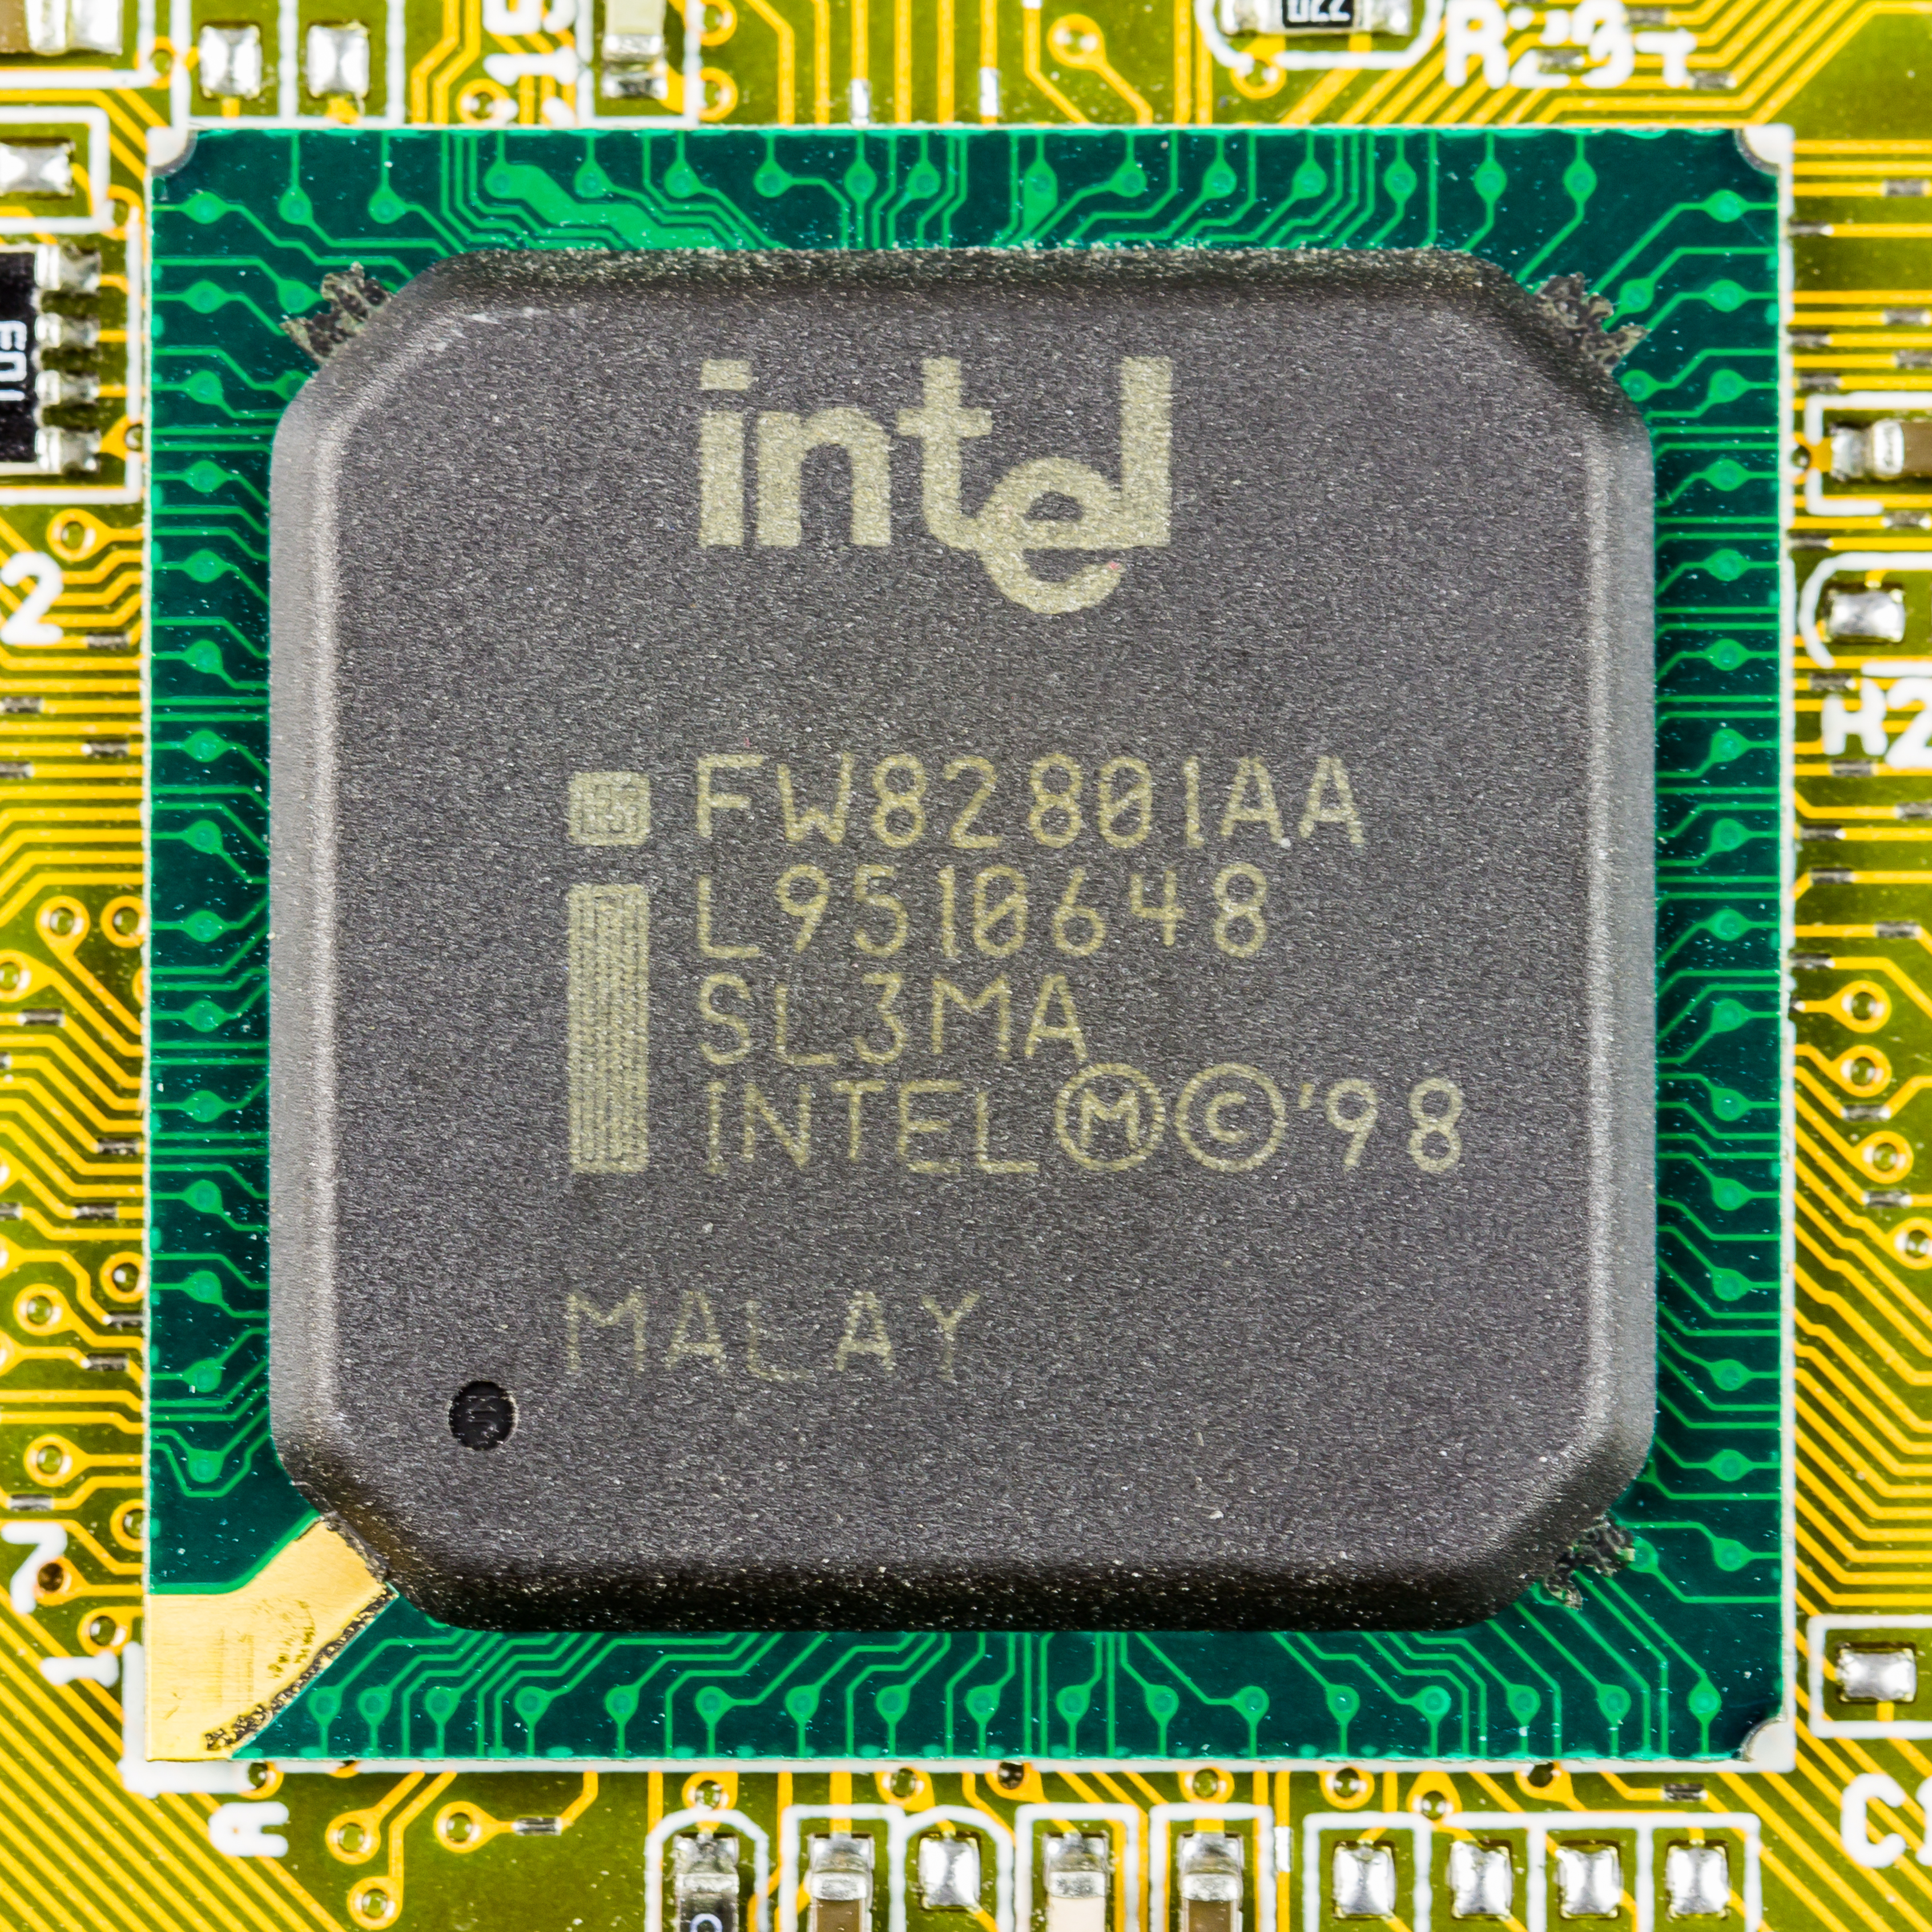 INTEL FW82801AA DOWNLOAD DRIVER